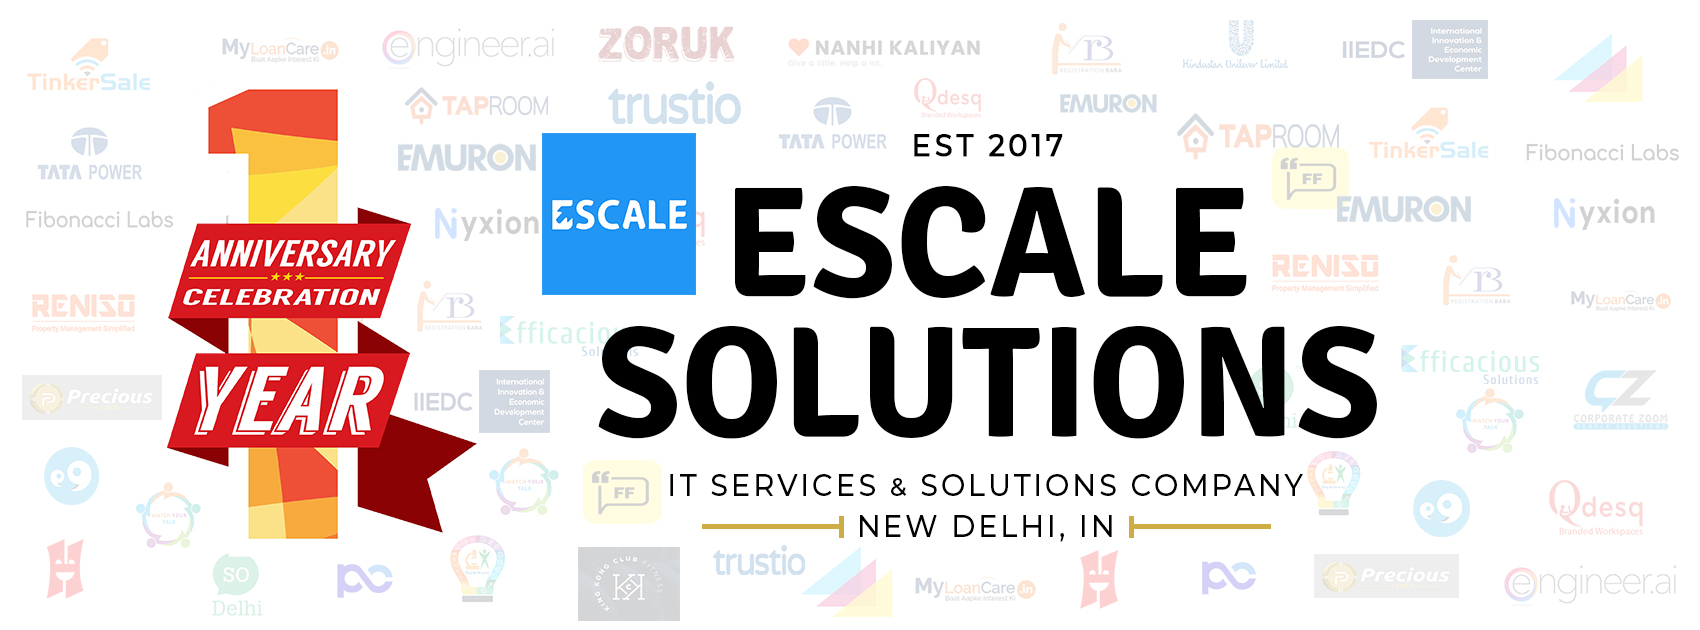 Escale Solutions: One Year Anniversary